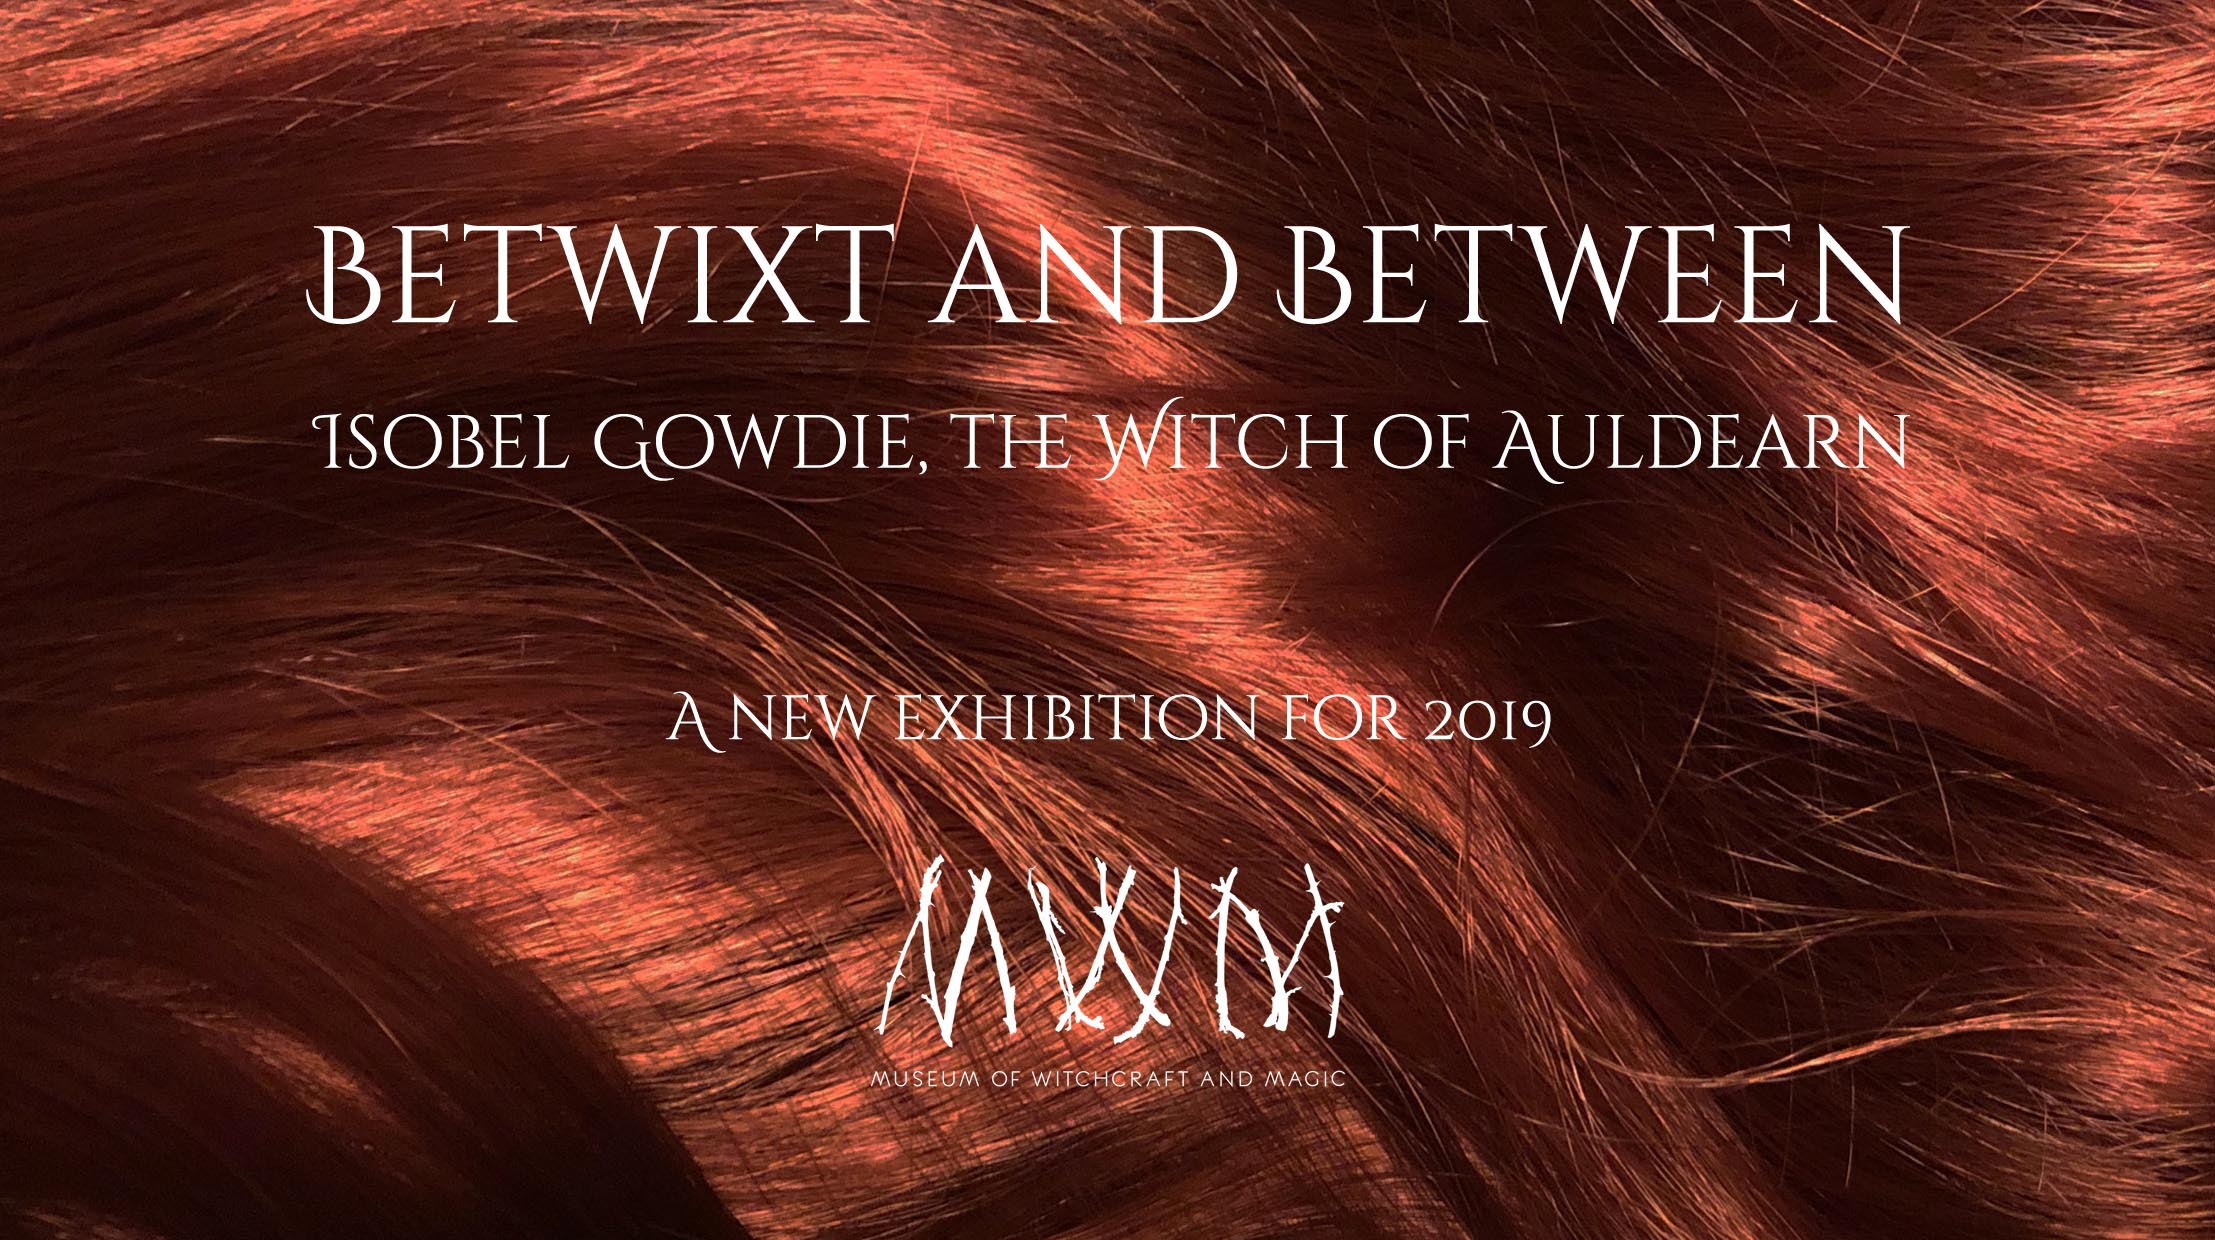 Betwixt and Between: Isobel Gowdie, The Witch of Auldearn